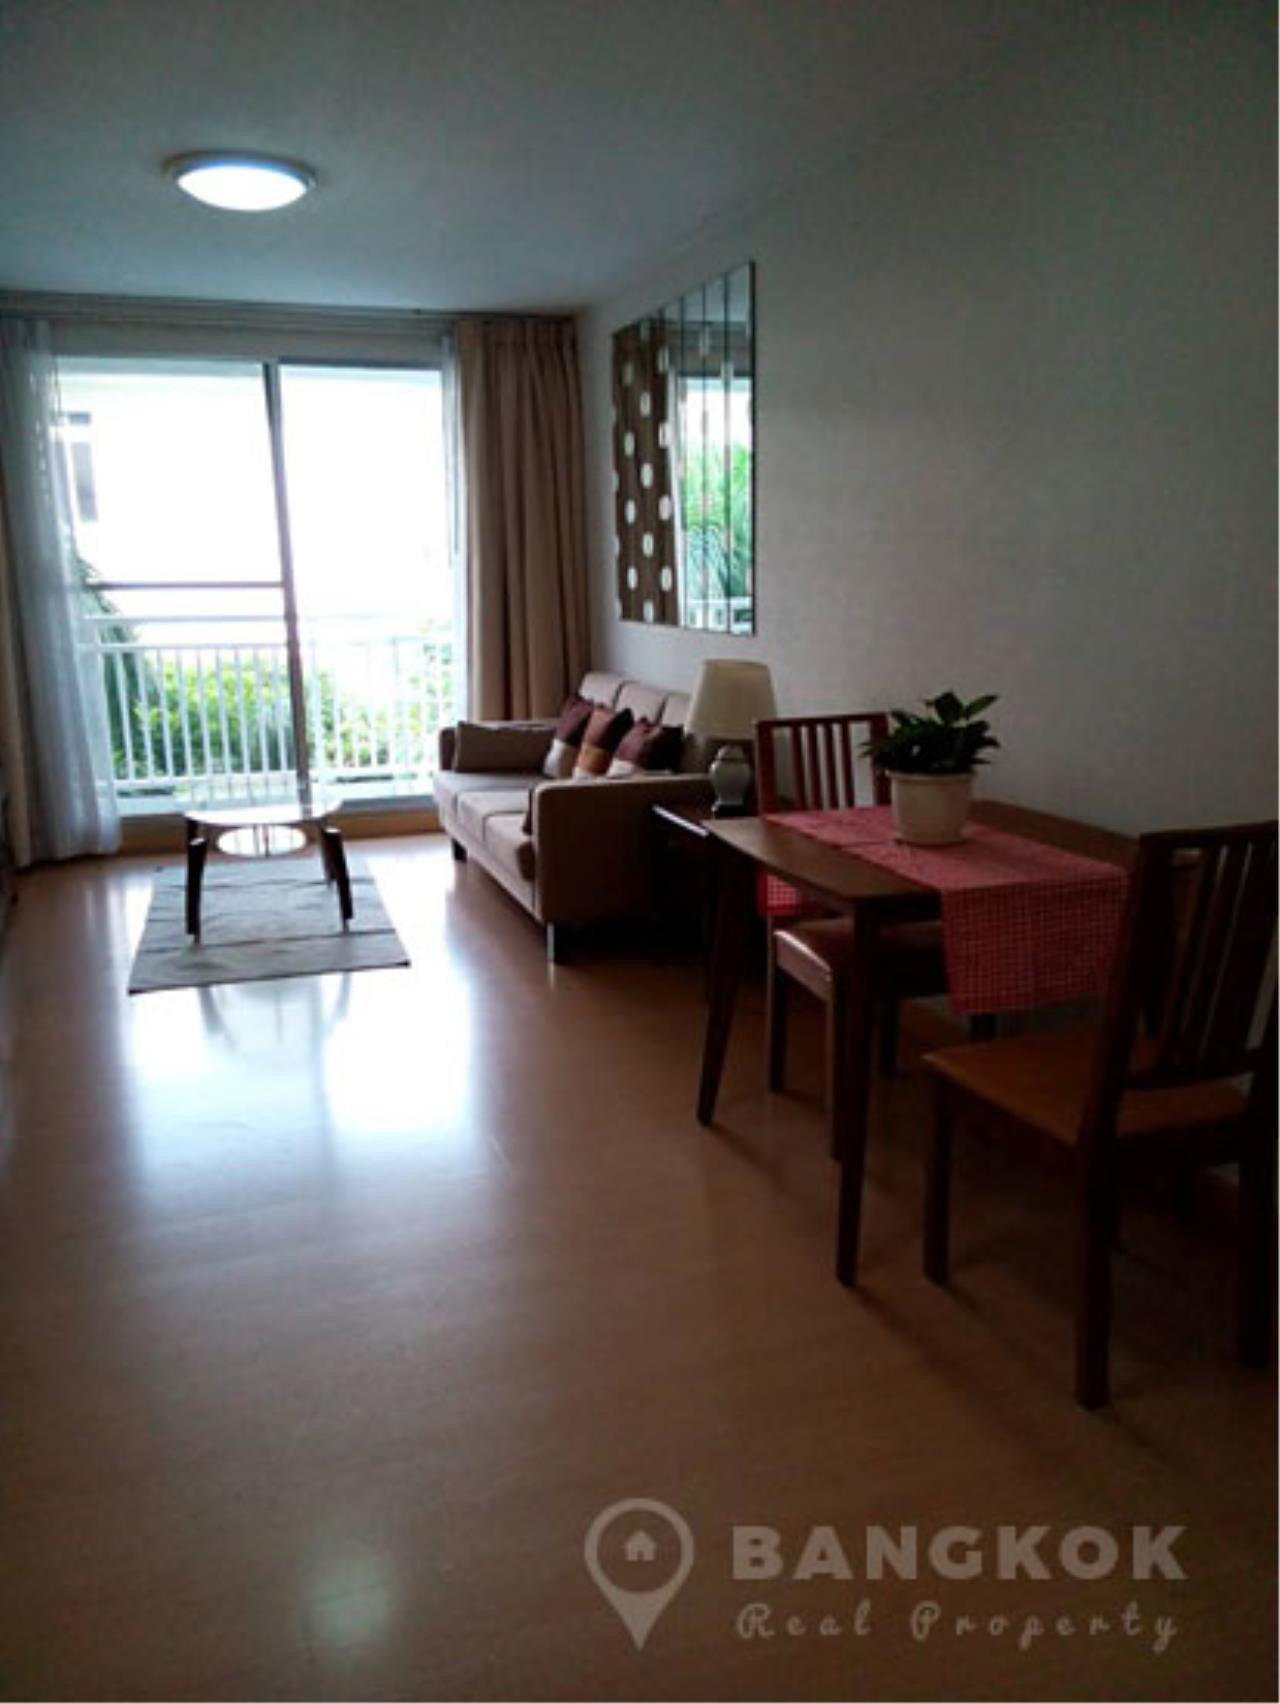 Bangkok Real Property Agency's Plus 38 Condo | Modern Spacious 1 Bed near Thonglor BTS 4